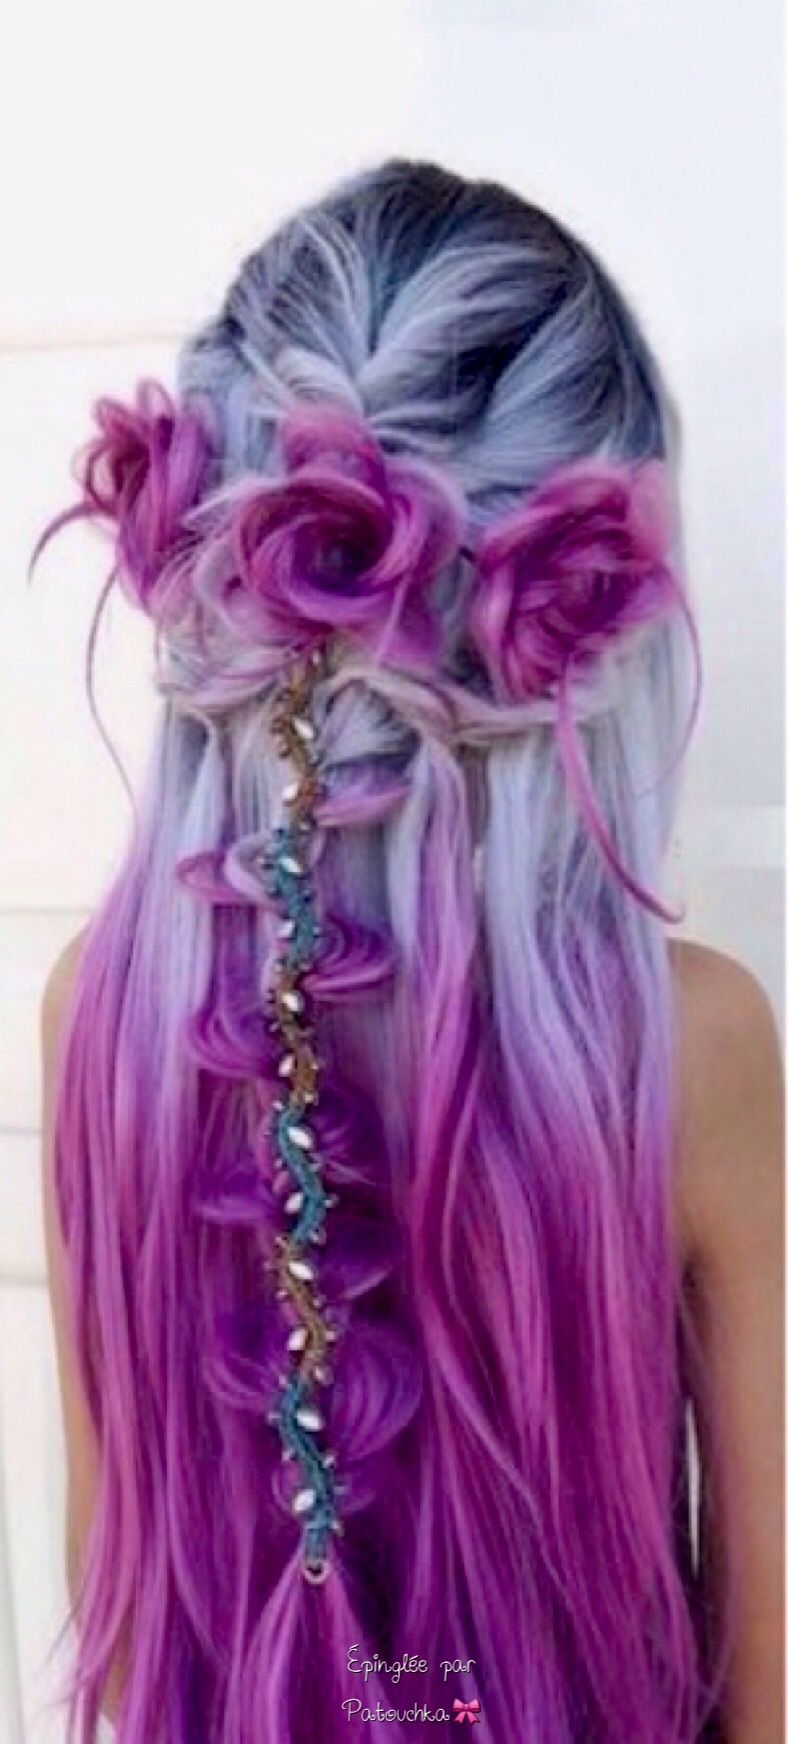 Beautiful Colored Hair And Hairstyle Mermaid Hair Color Hair Styles Hair Color Purple